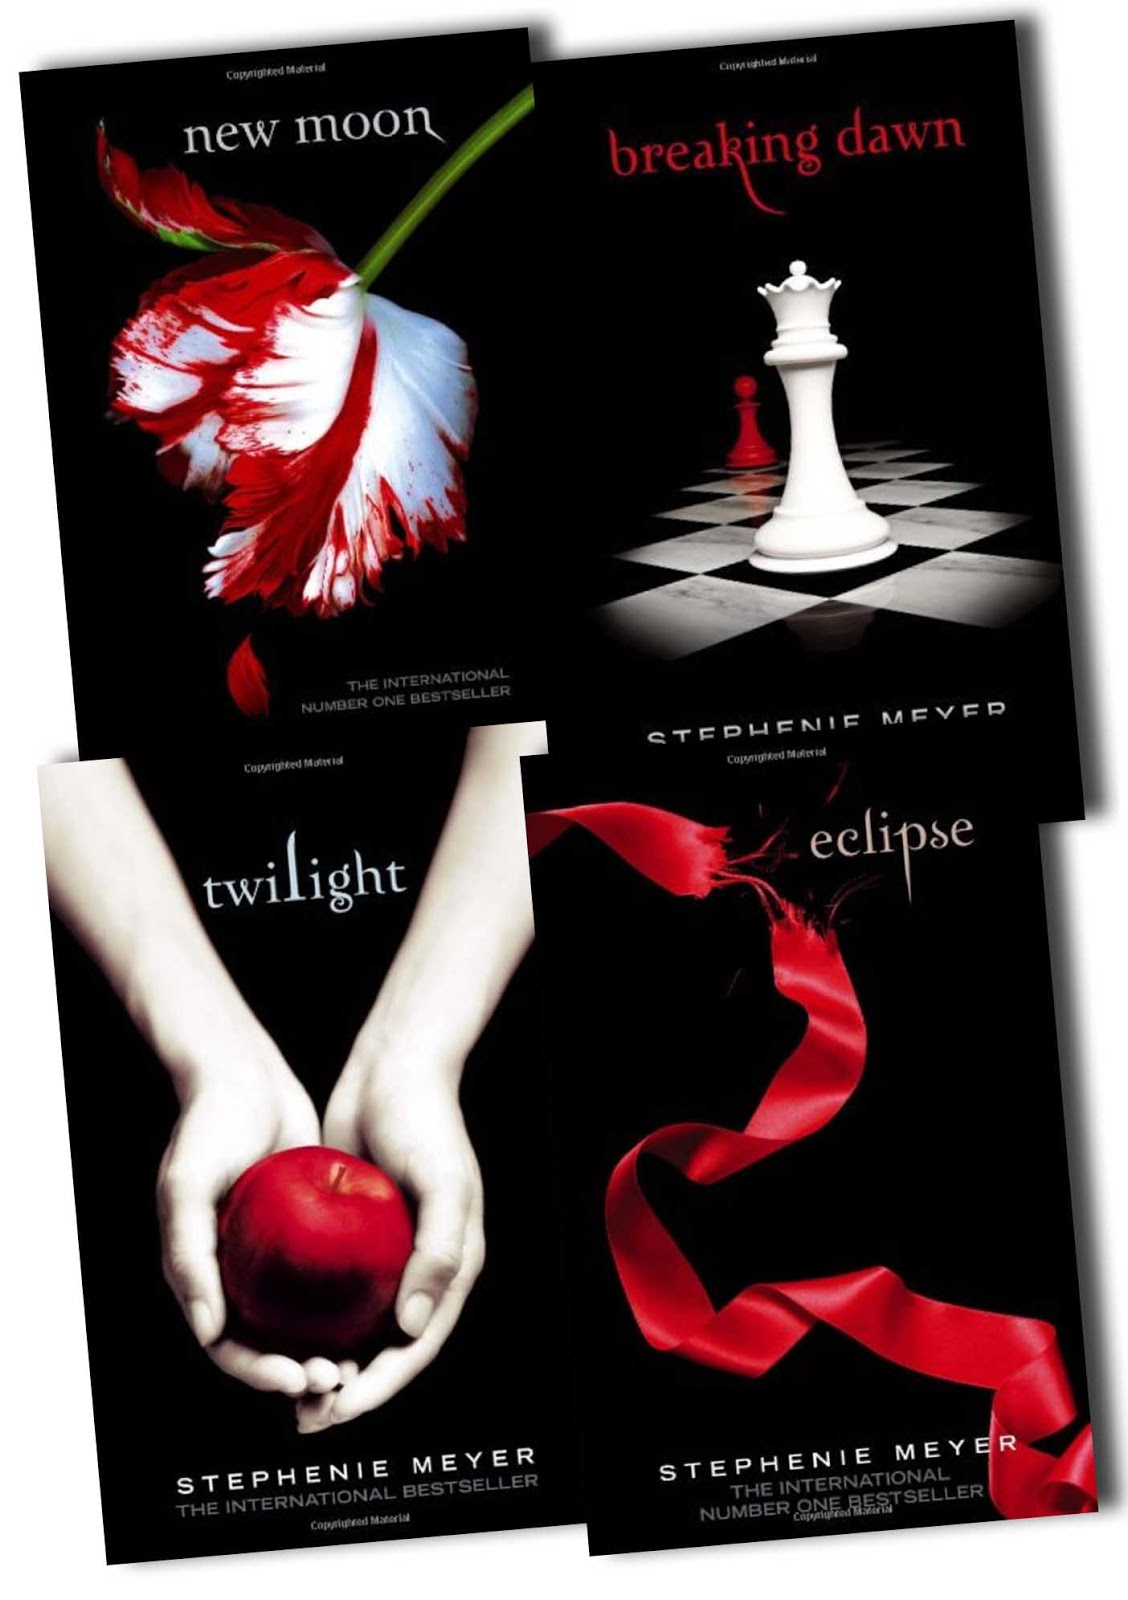 Crepusculo Libro Online Kitab Dost Twilight Saga Complete Collection By Stephenie